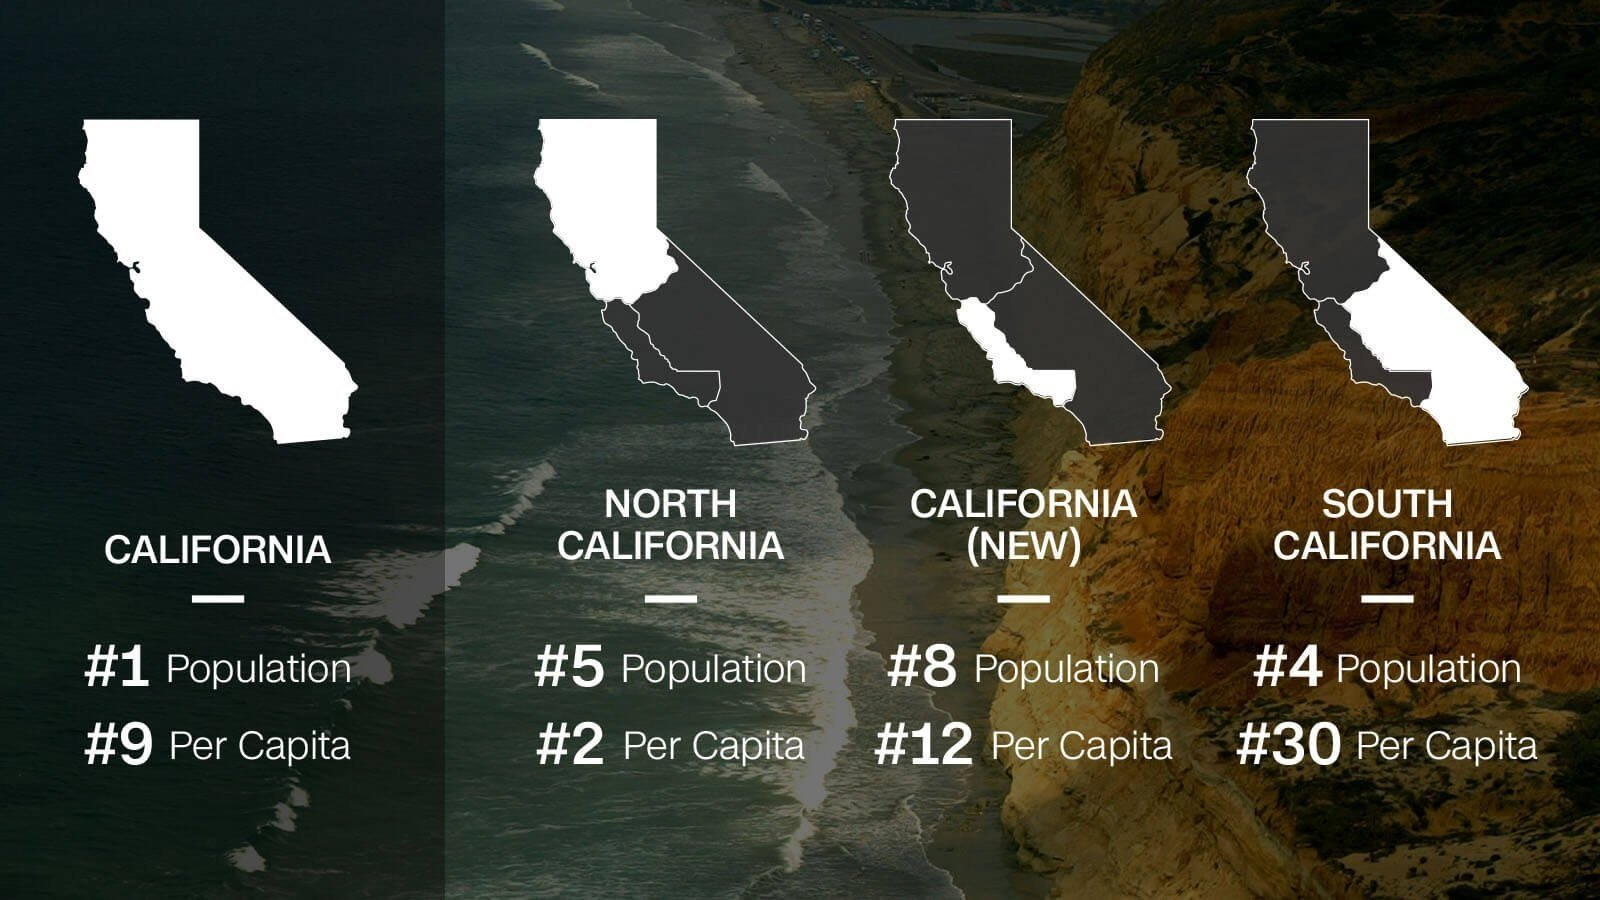 Proposal to split California into 3 states goes to ballot